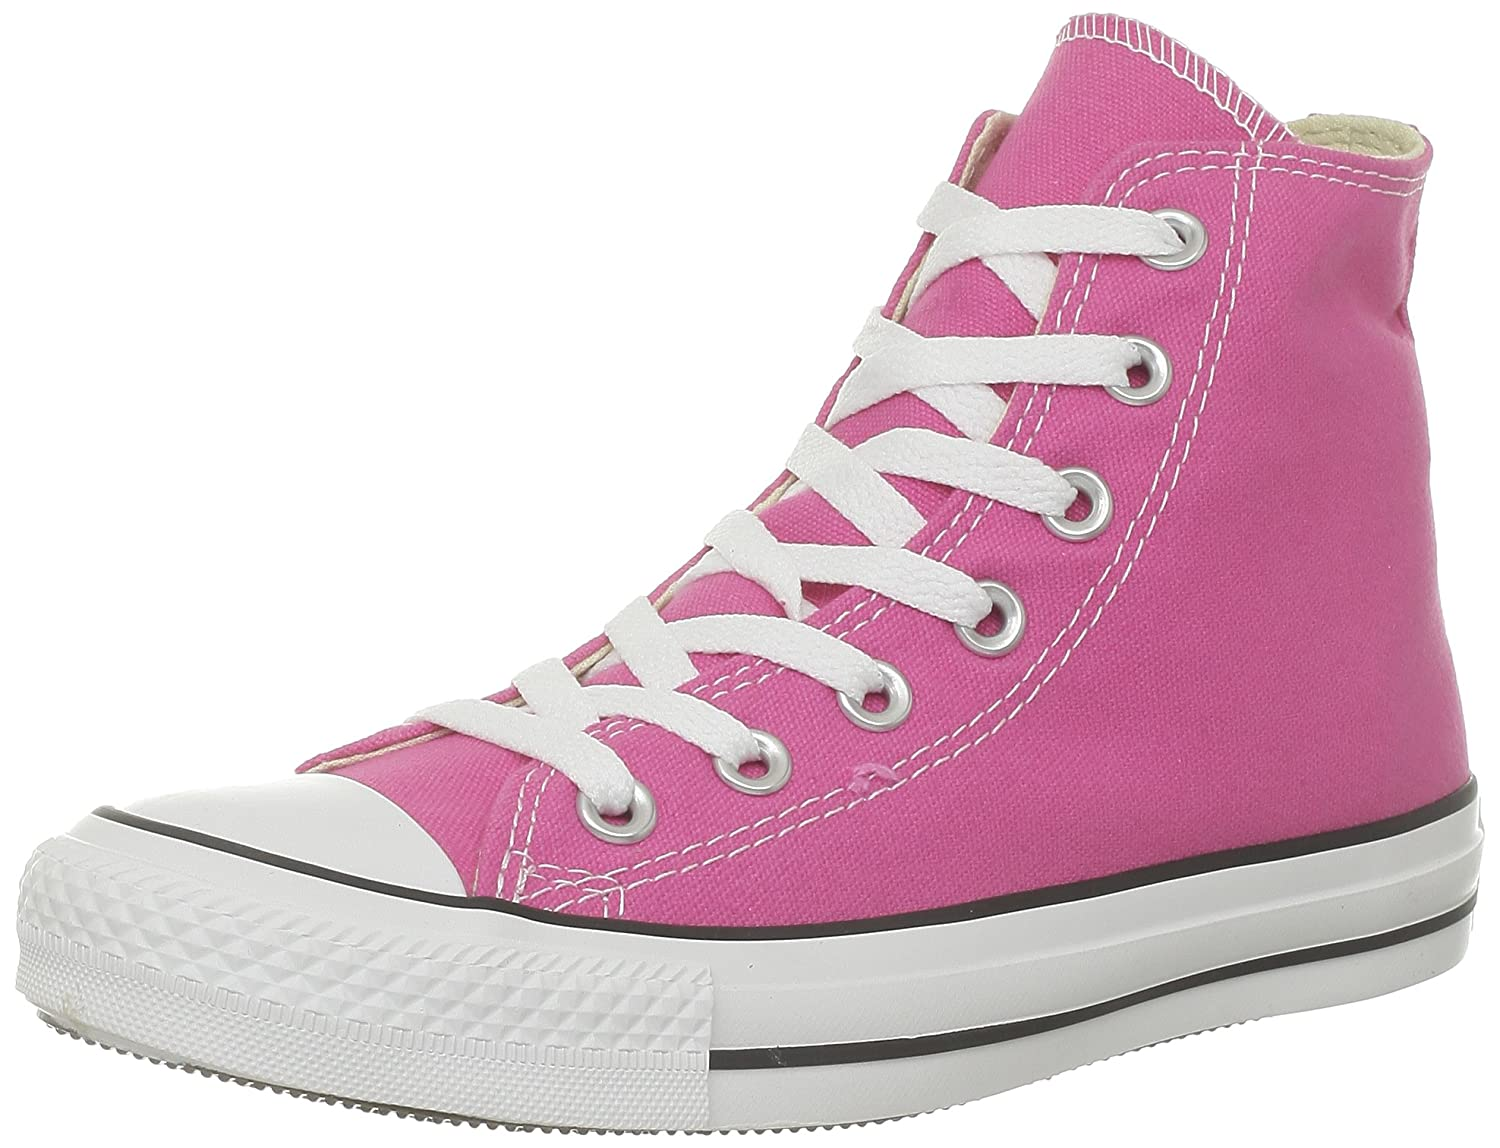 Converse Unisex Chuck Taylor All Star High Top B00GXABT3S 9.5 F(M) UK|Pink